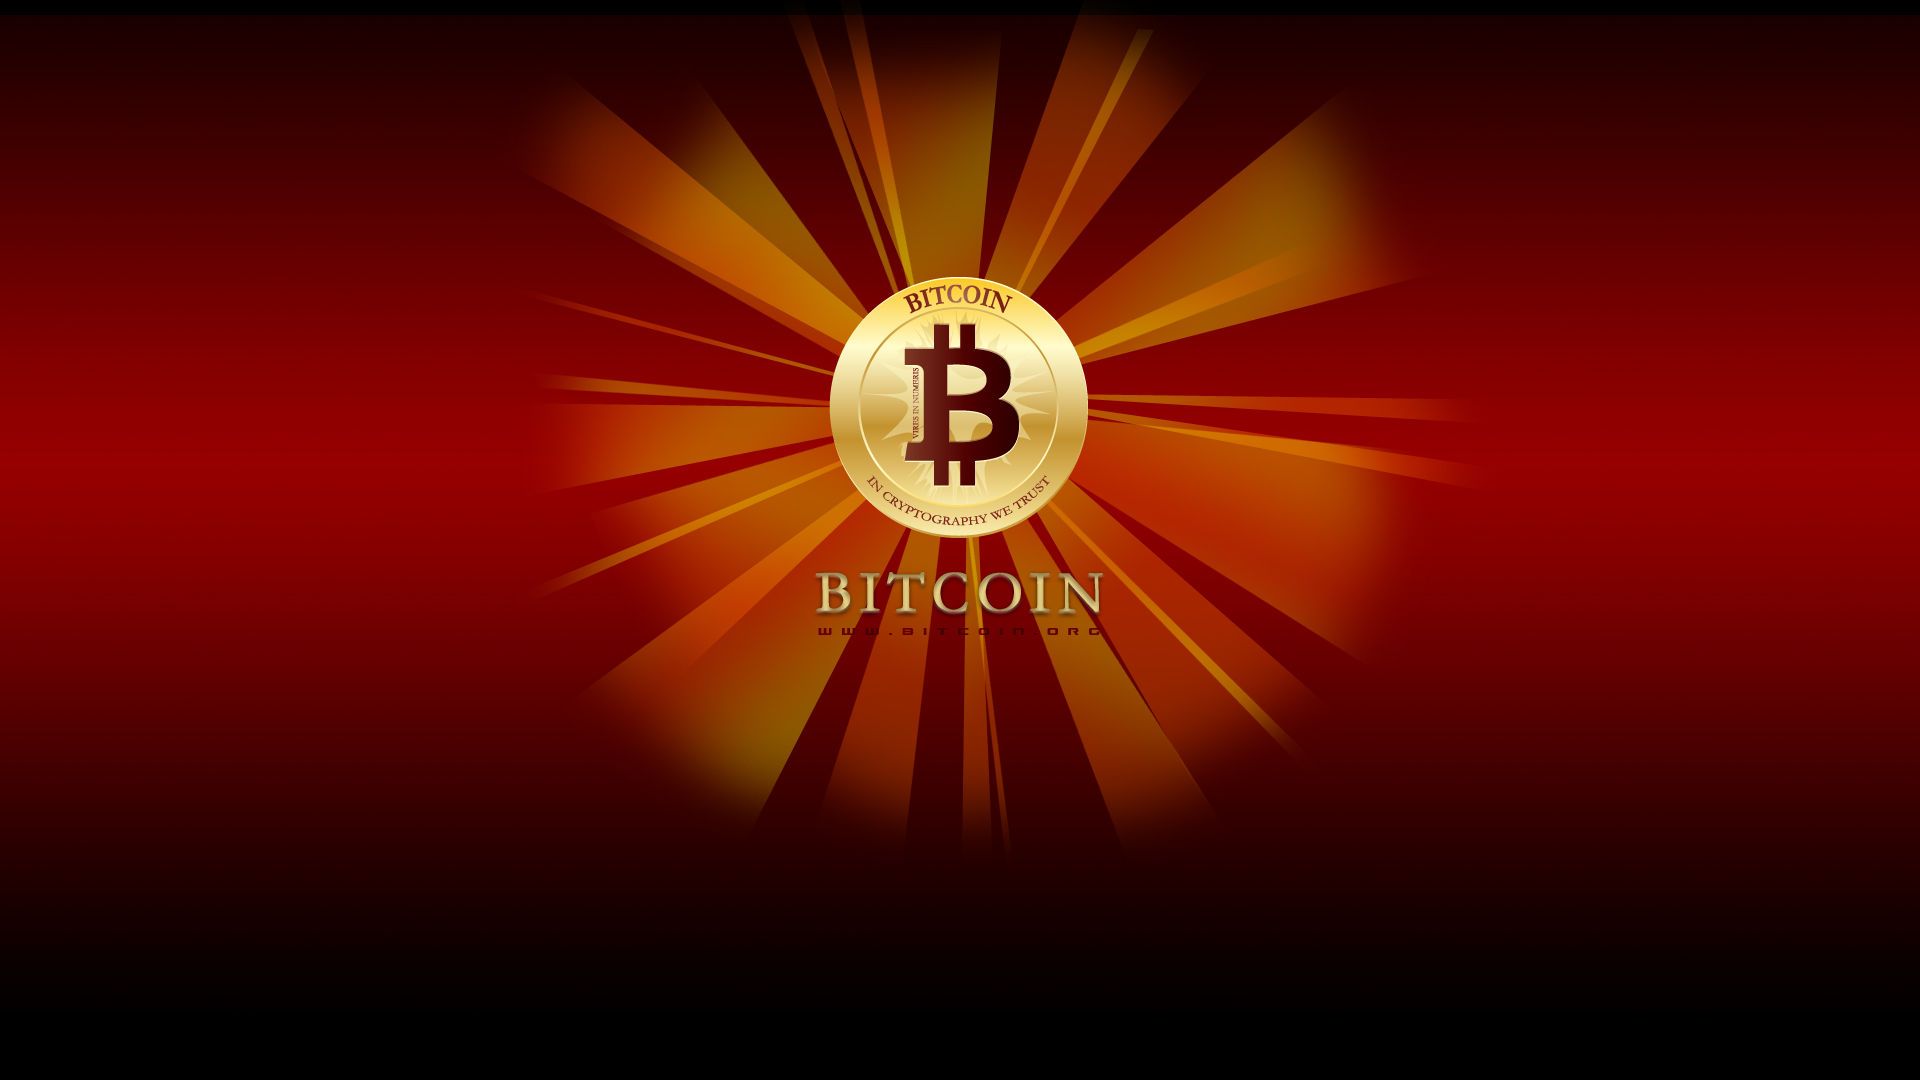 Bitcoin Logo Flat Coin Star RD by carbonism on DeviantArt